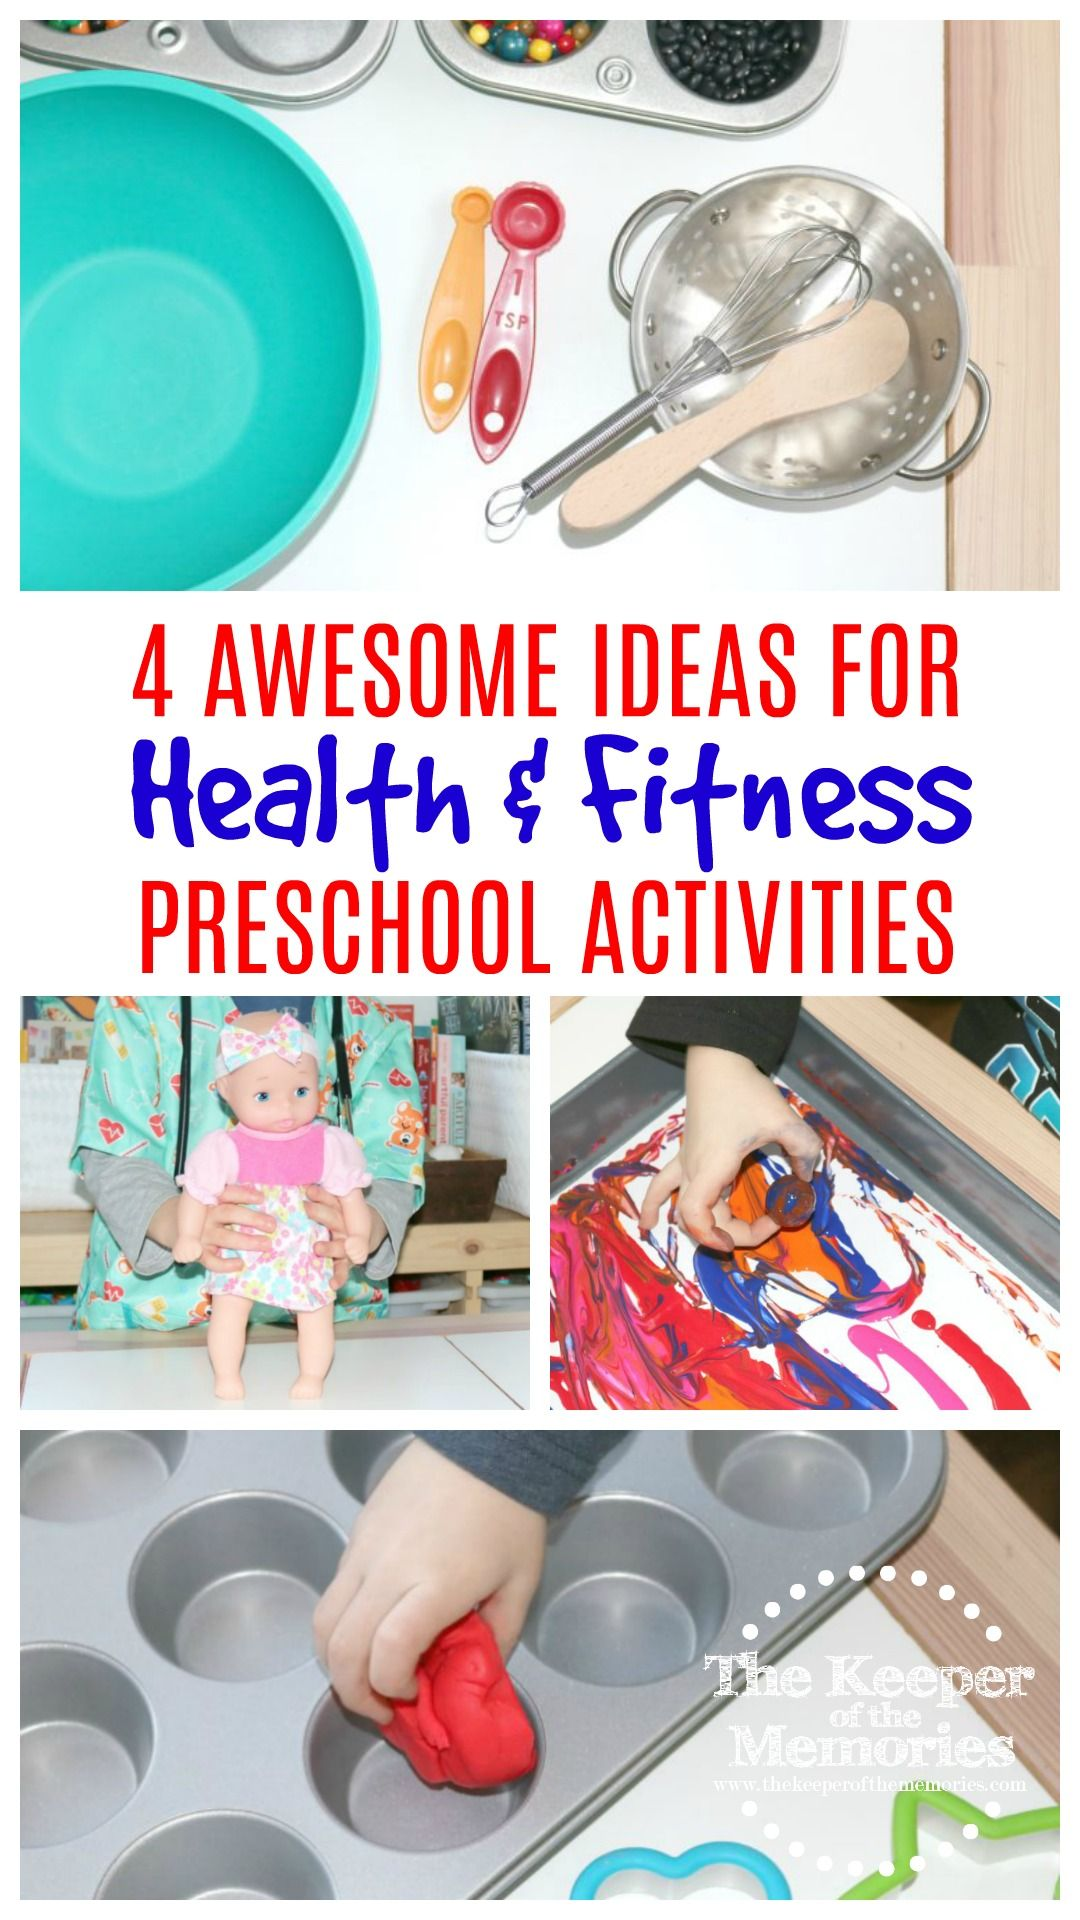 4 Fun Health Amp Fitness Preschool Monthly Theme Ideas For